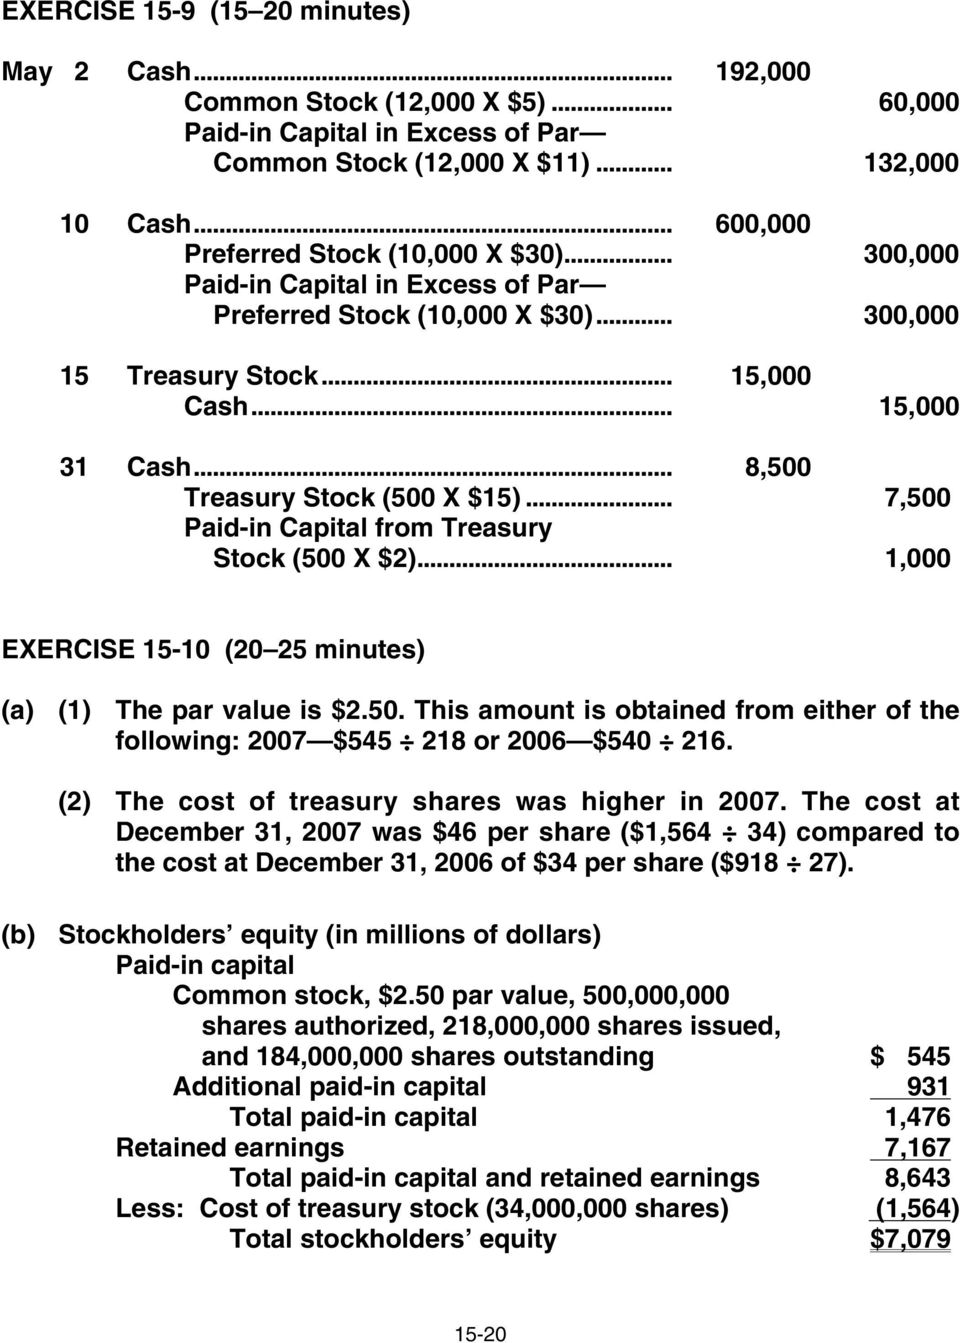 CHAPTER 15  Stockholders Equity ASSIGNMENT CLASSIFICATION TABLE (BY